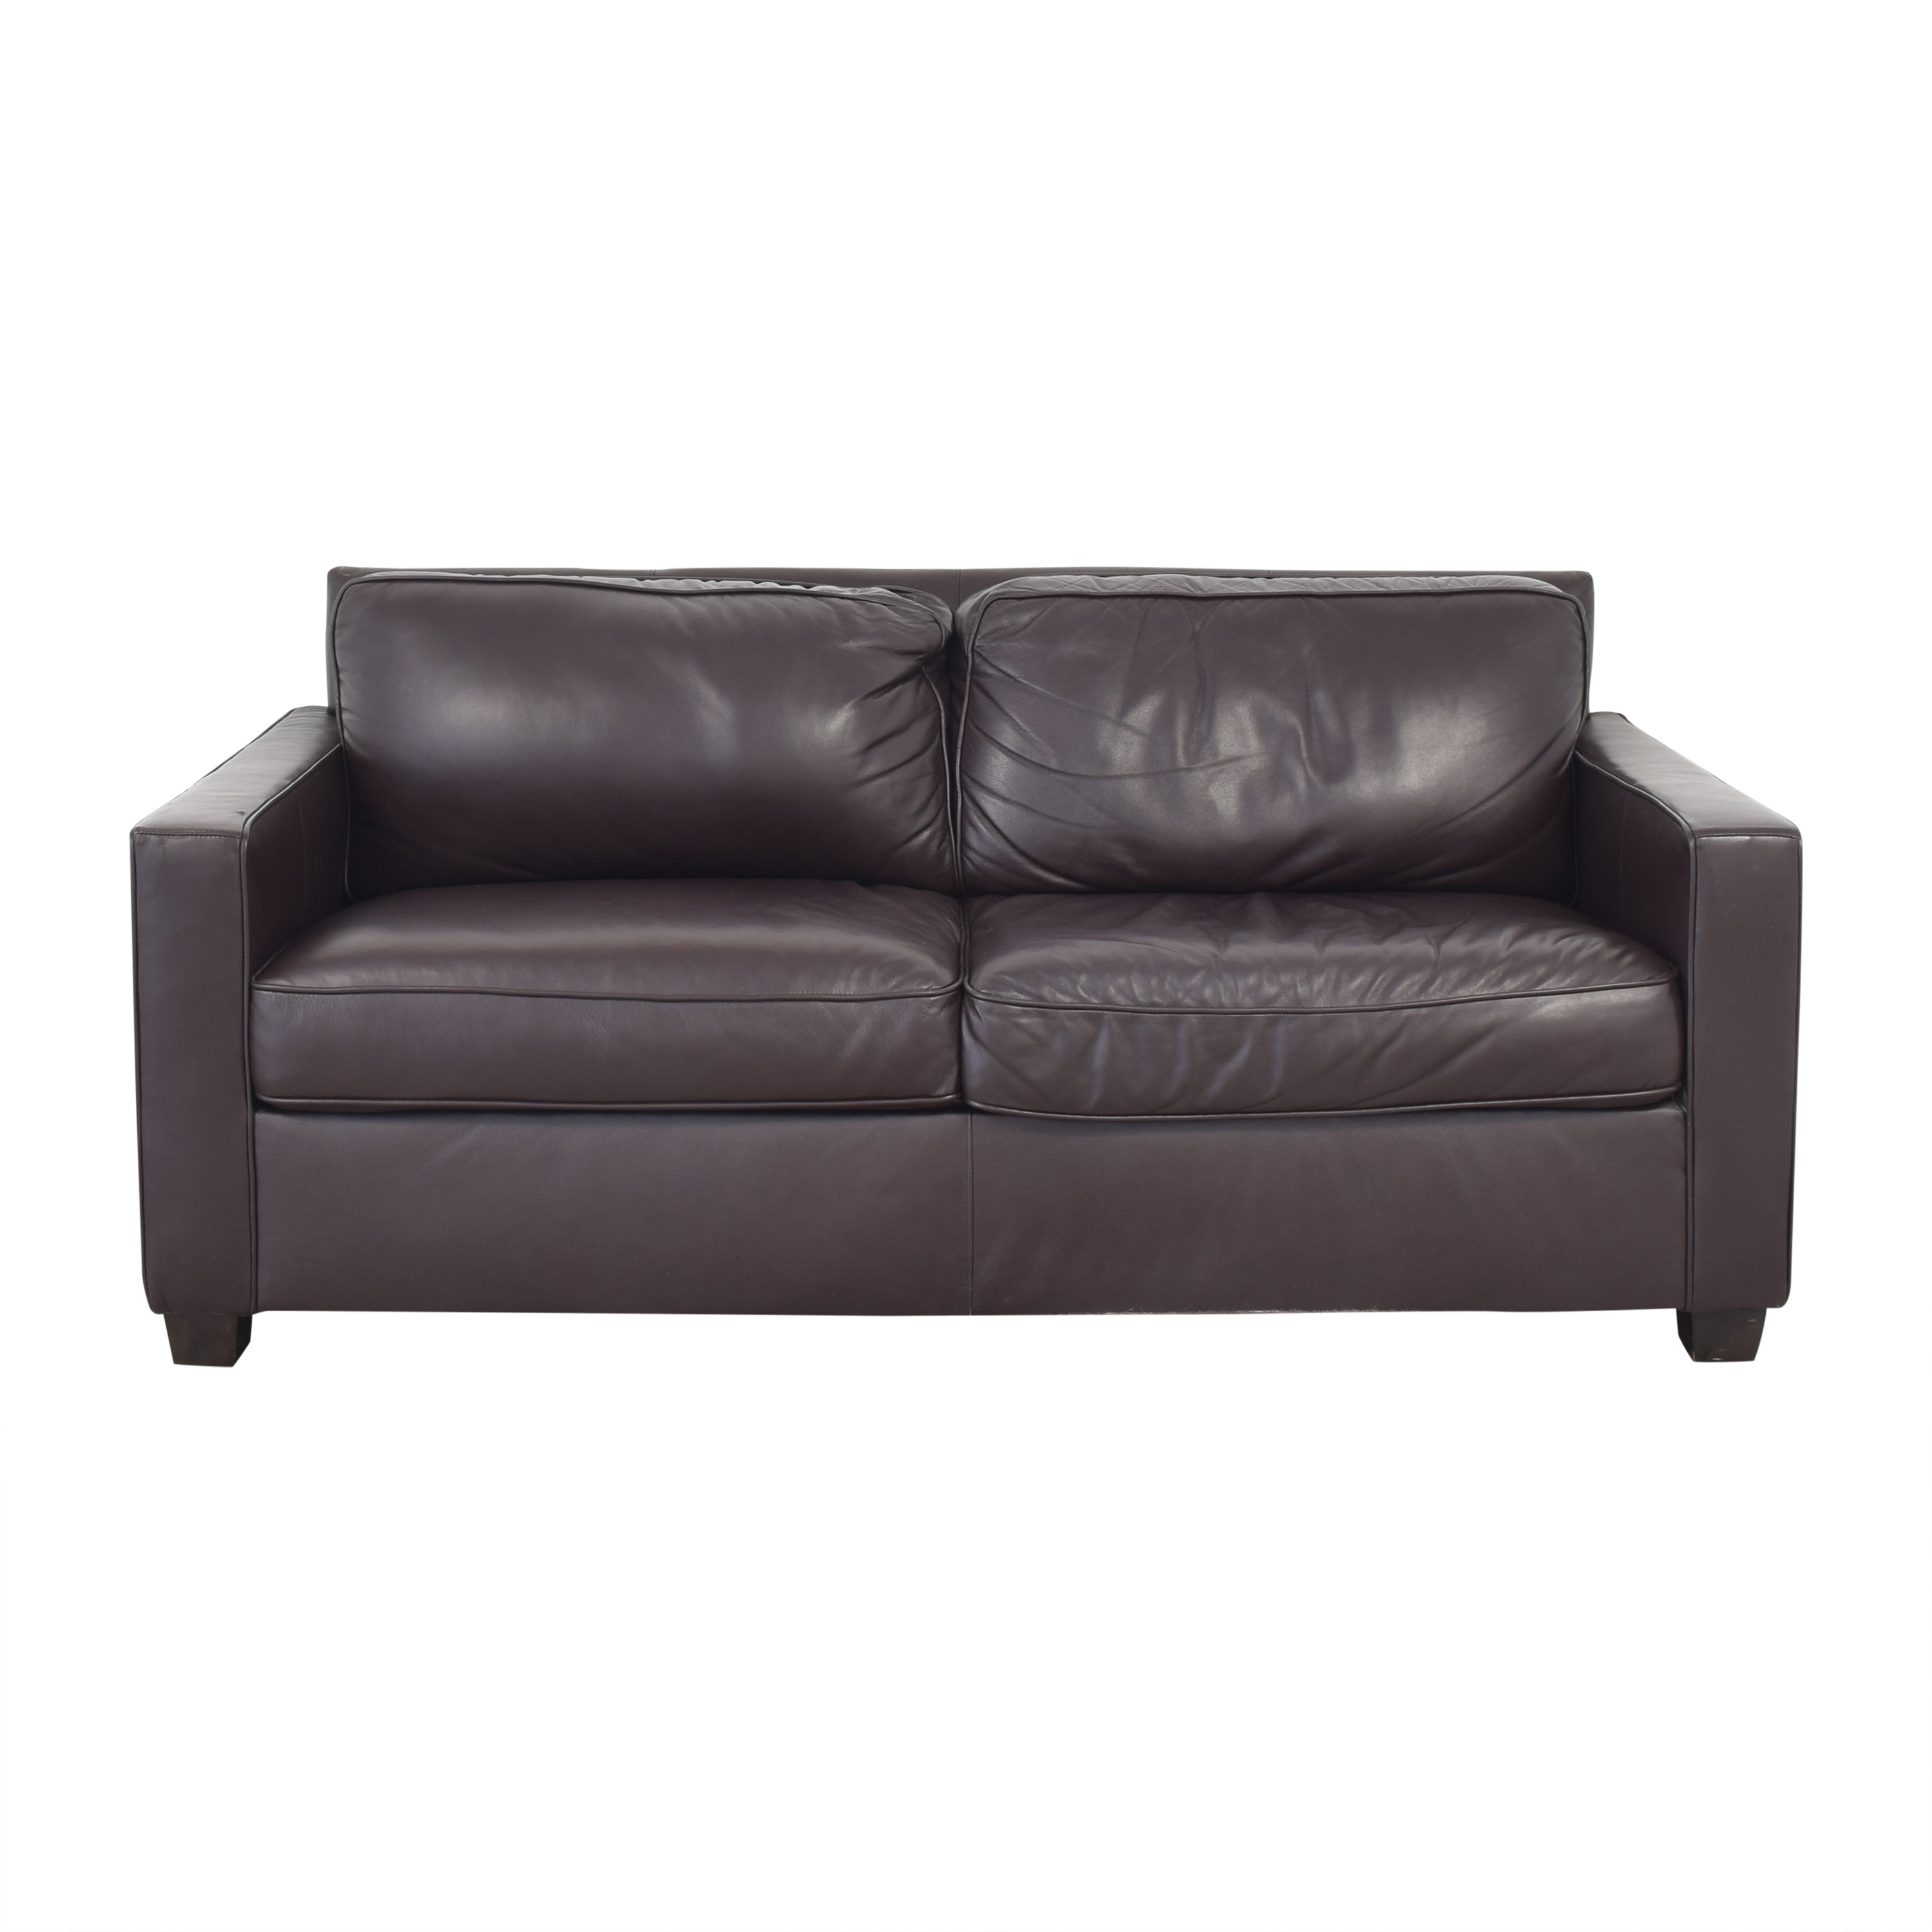 West Elm West Elm Henry Leather Sofa coupon